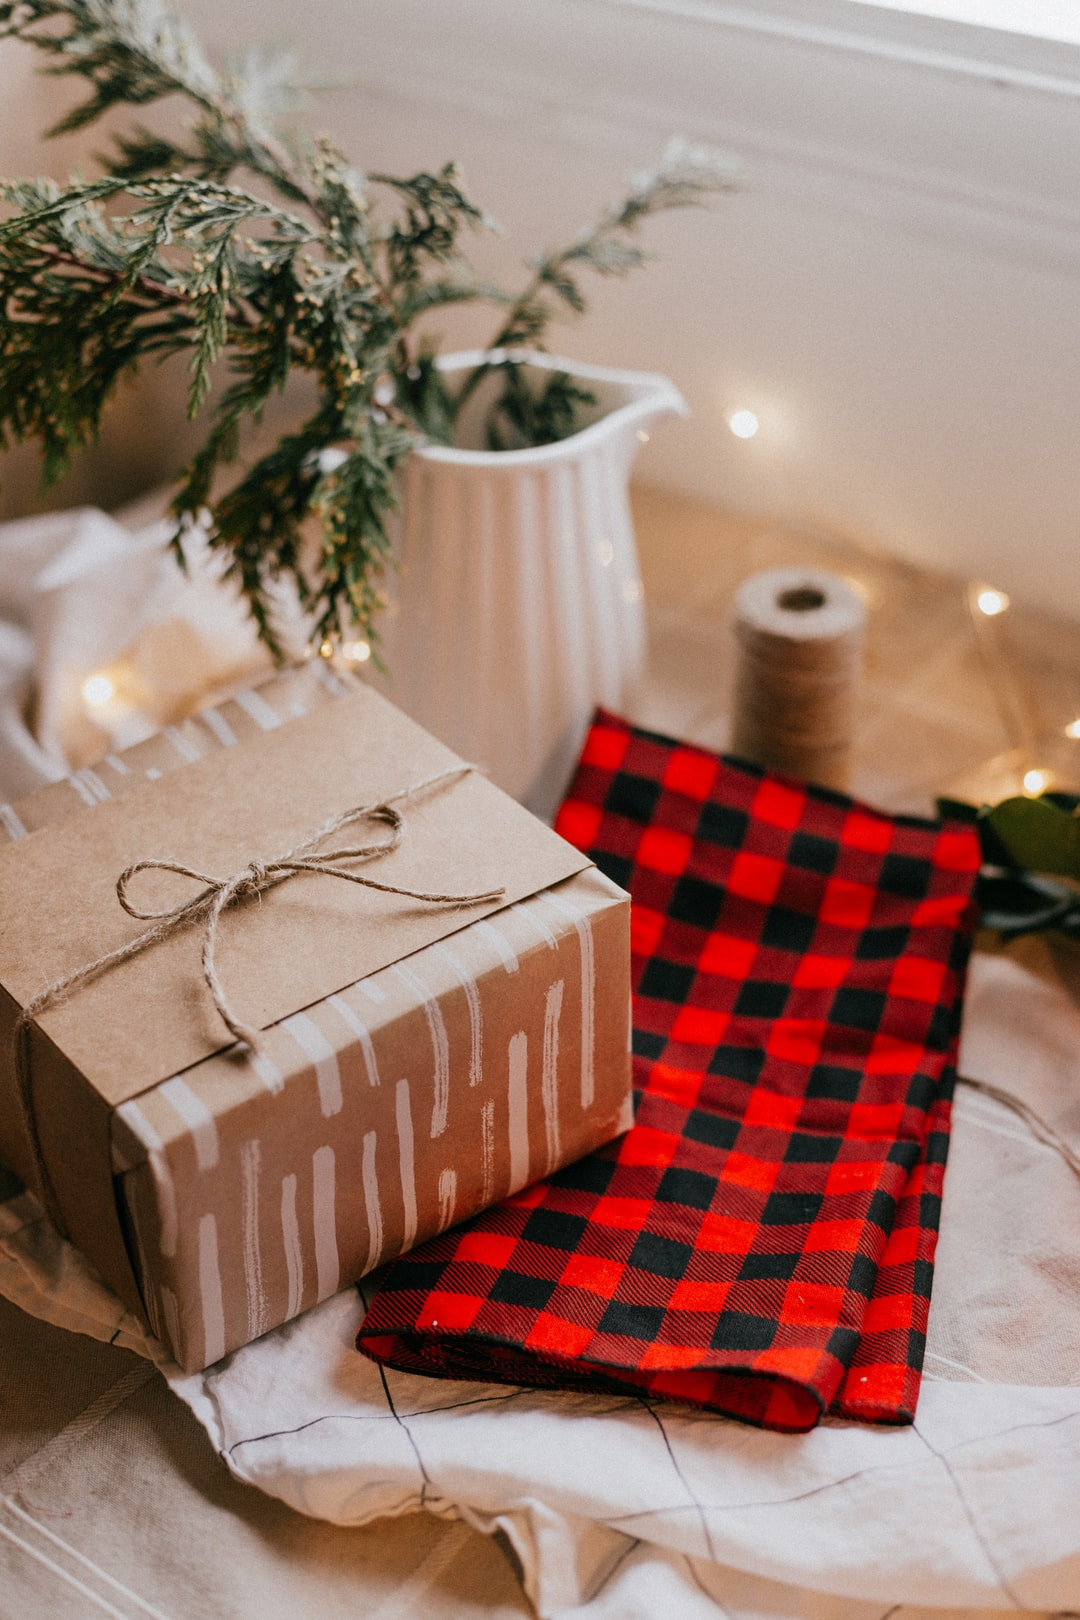 5 Tips to Giving Your Home a Holiday Facelift